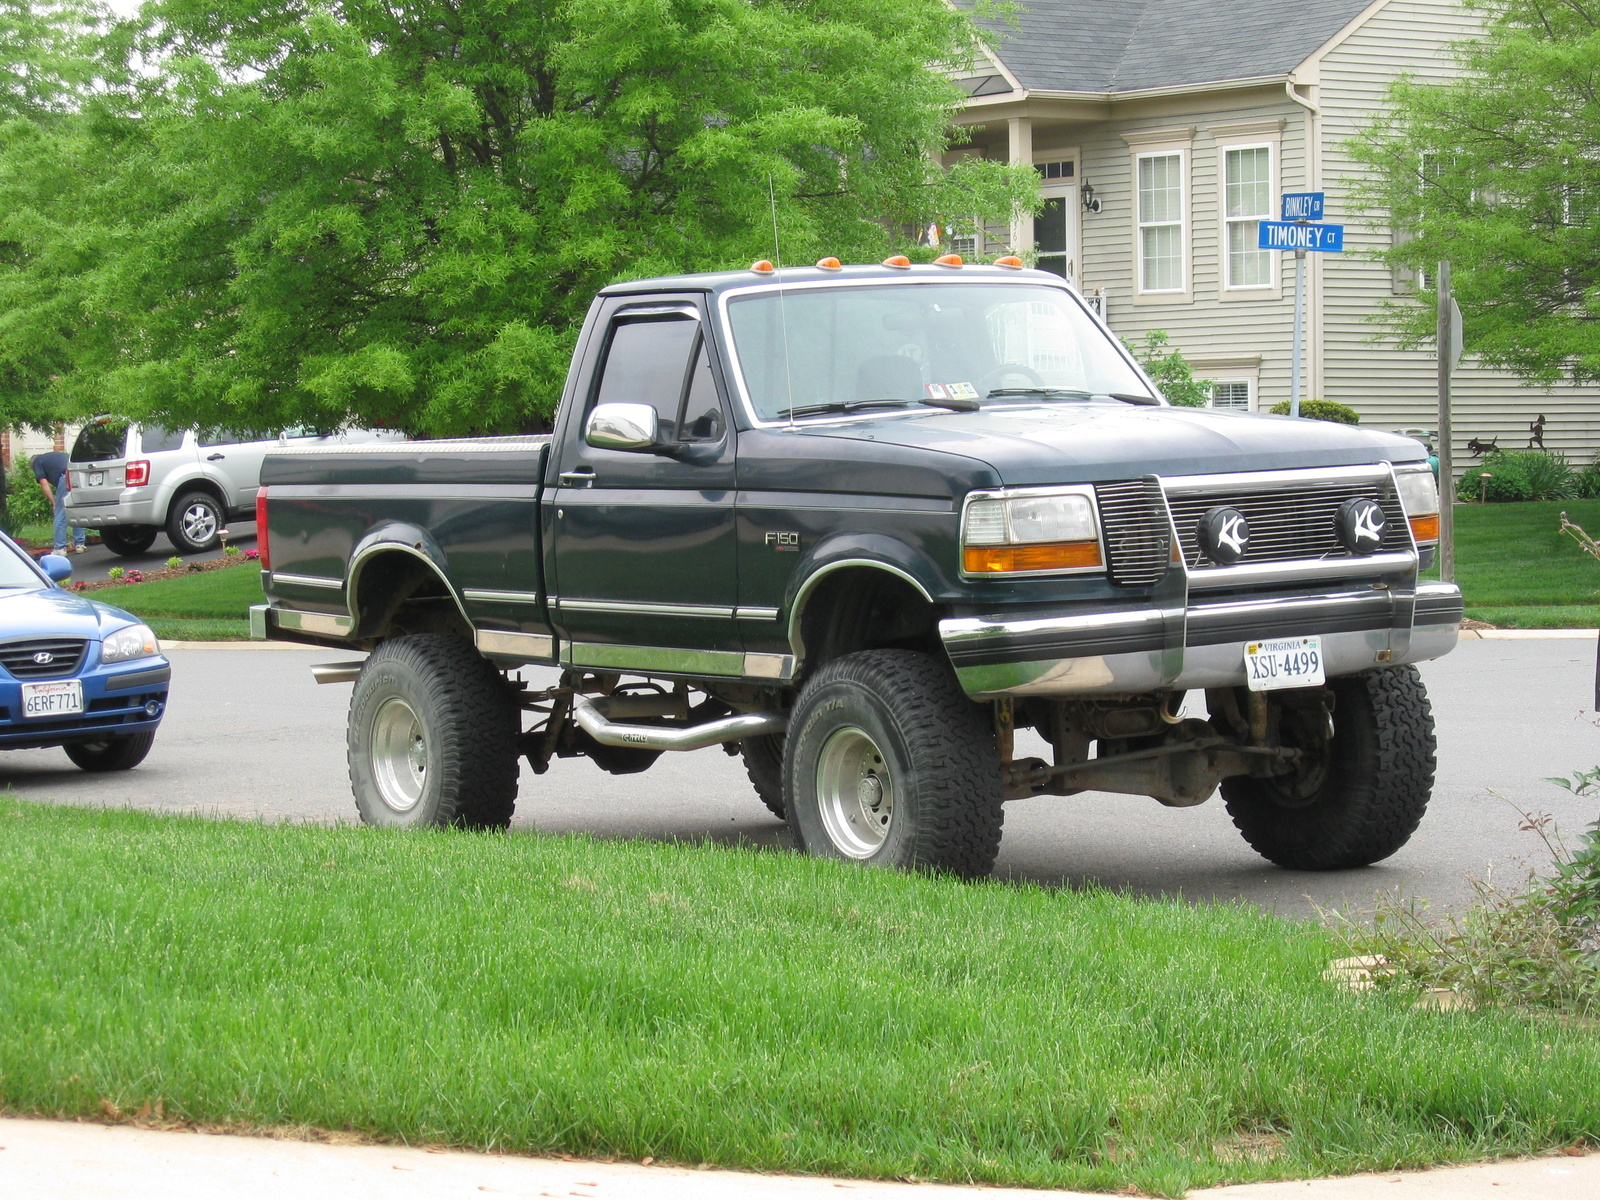 Ford f-150 1992 photo - 6